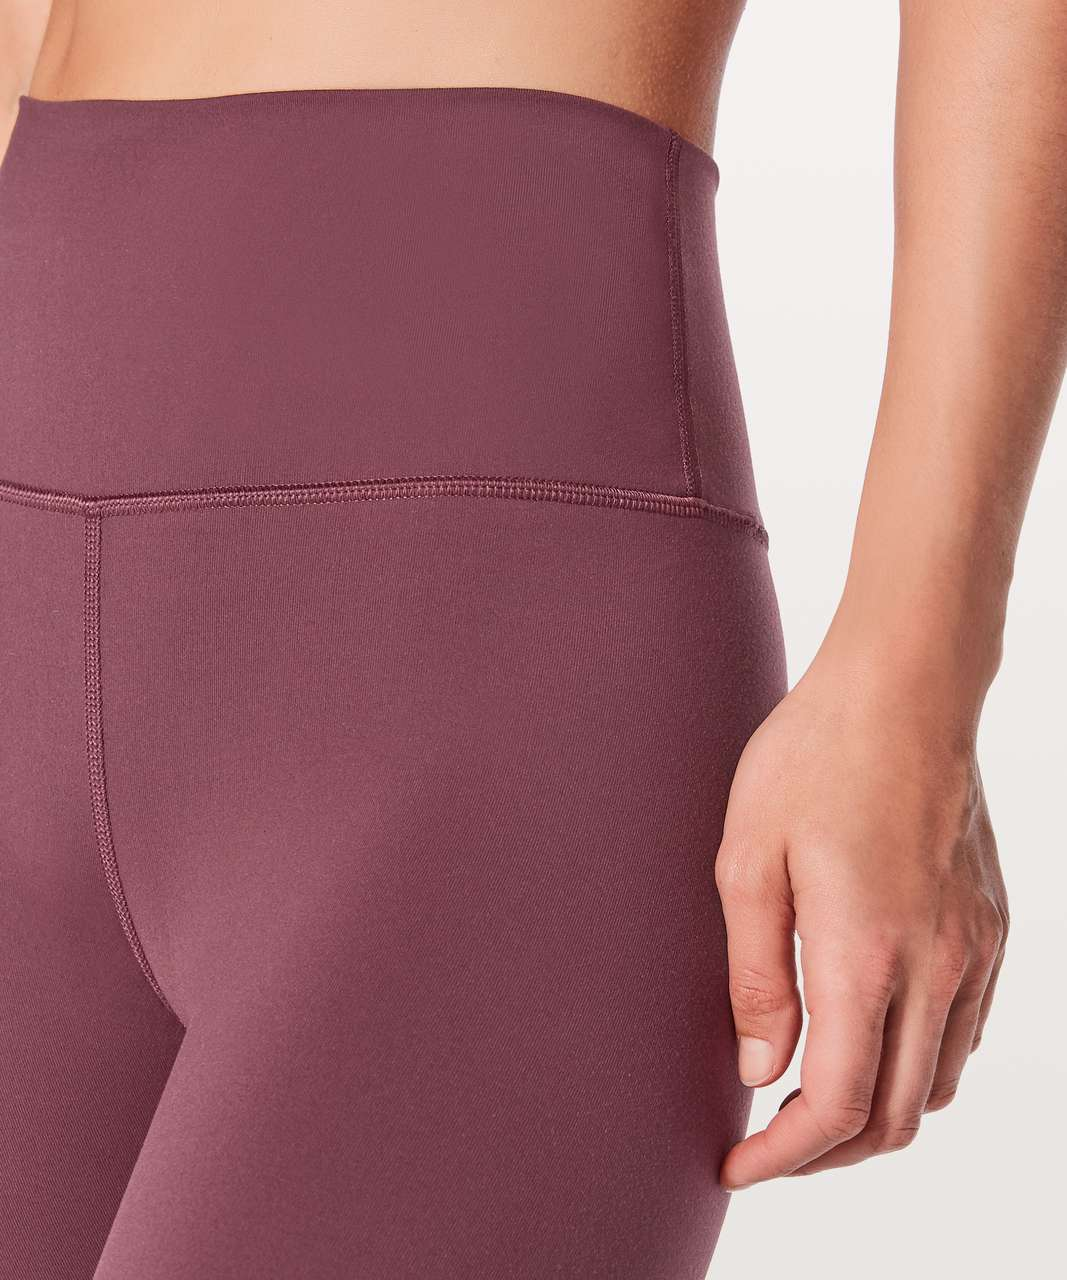 "Lululemon Wunder Under Crop (Hi-Rise) 21"" - Redwood"